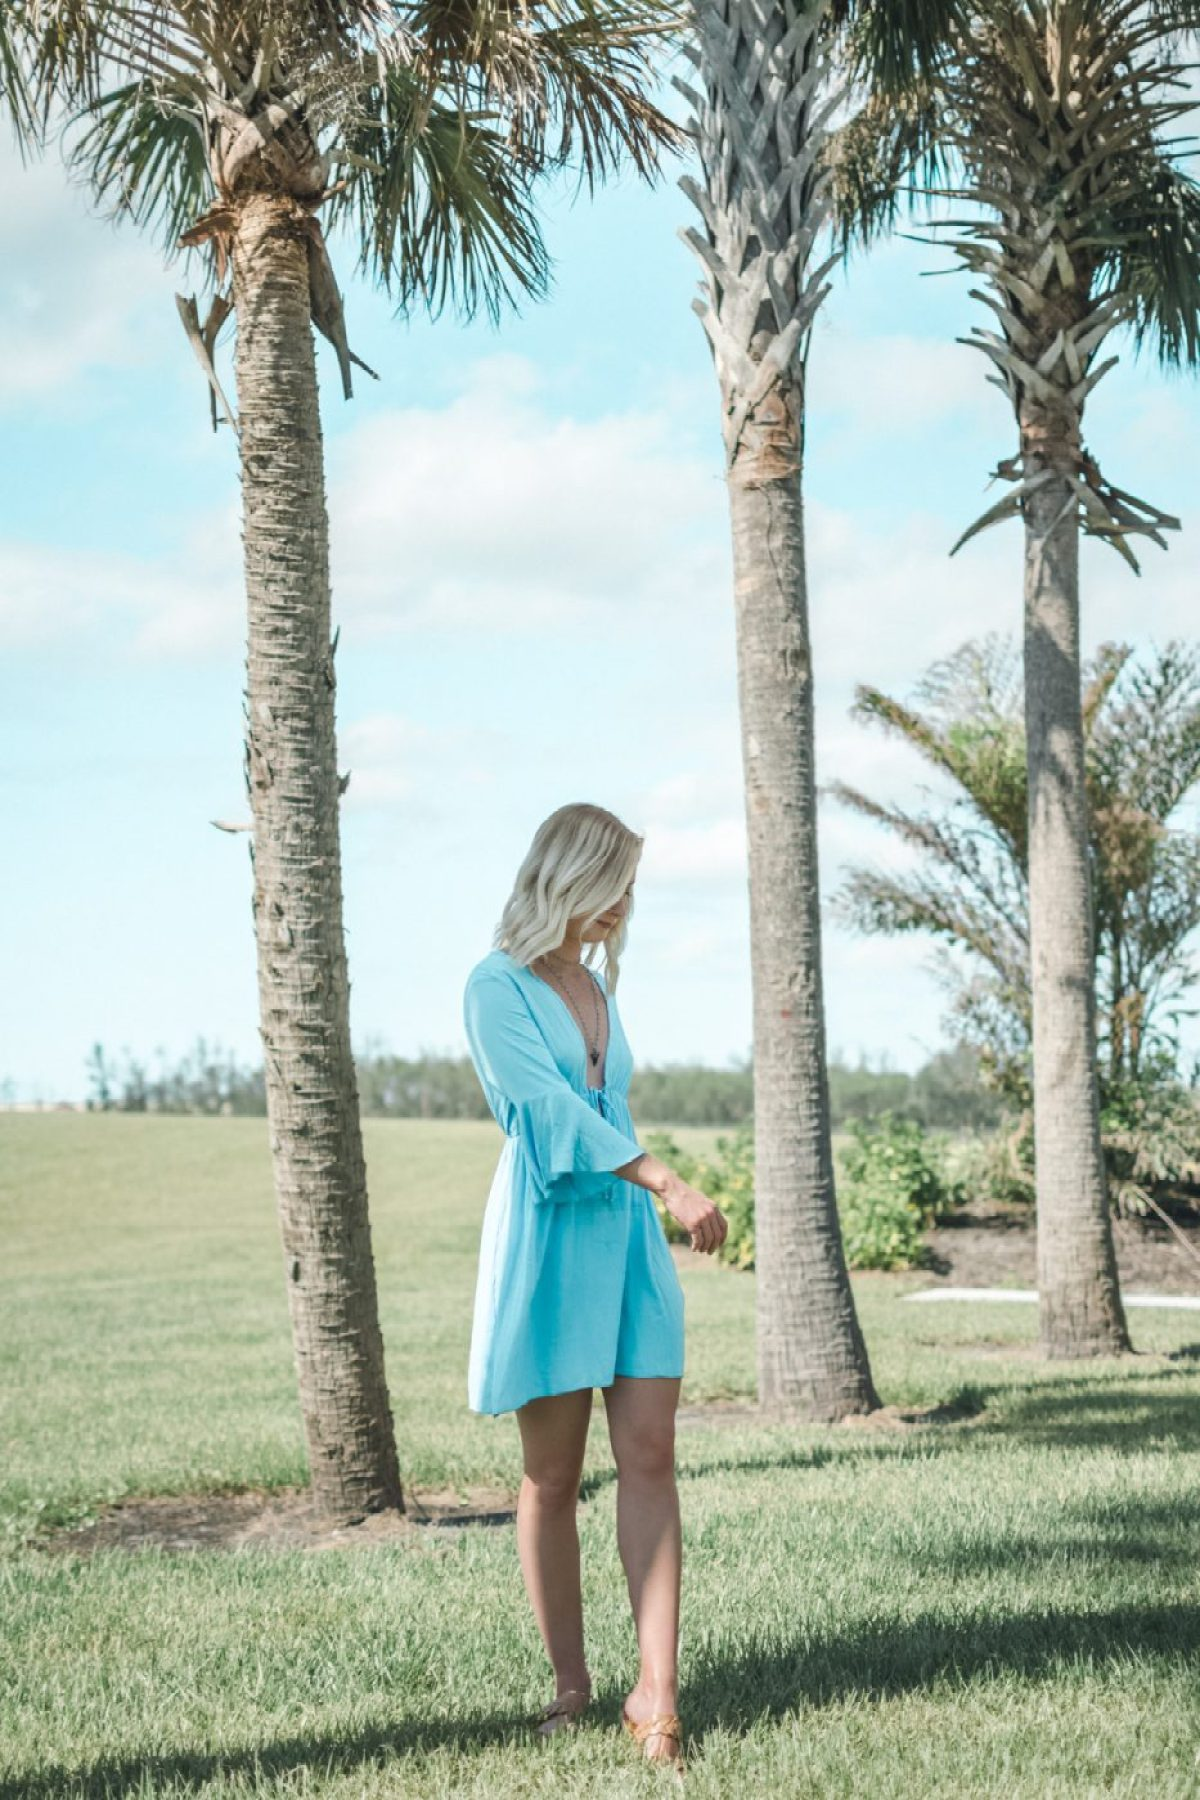 Bell Sleeve Dress worn by Jenny of Sweet Teal